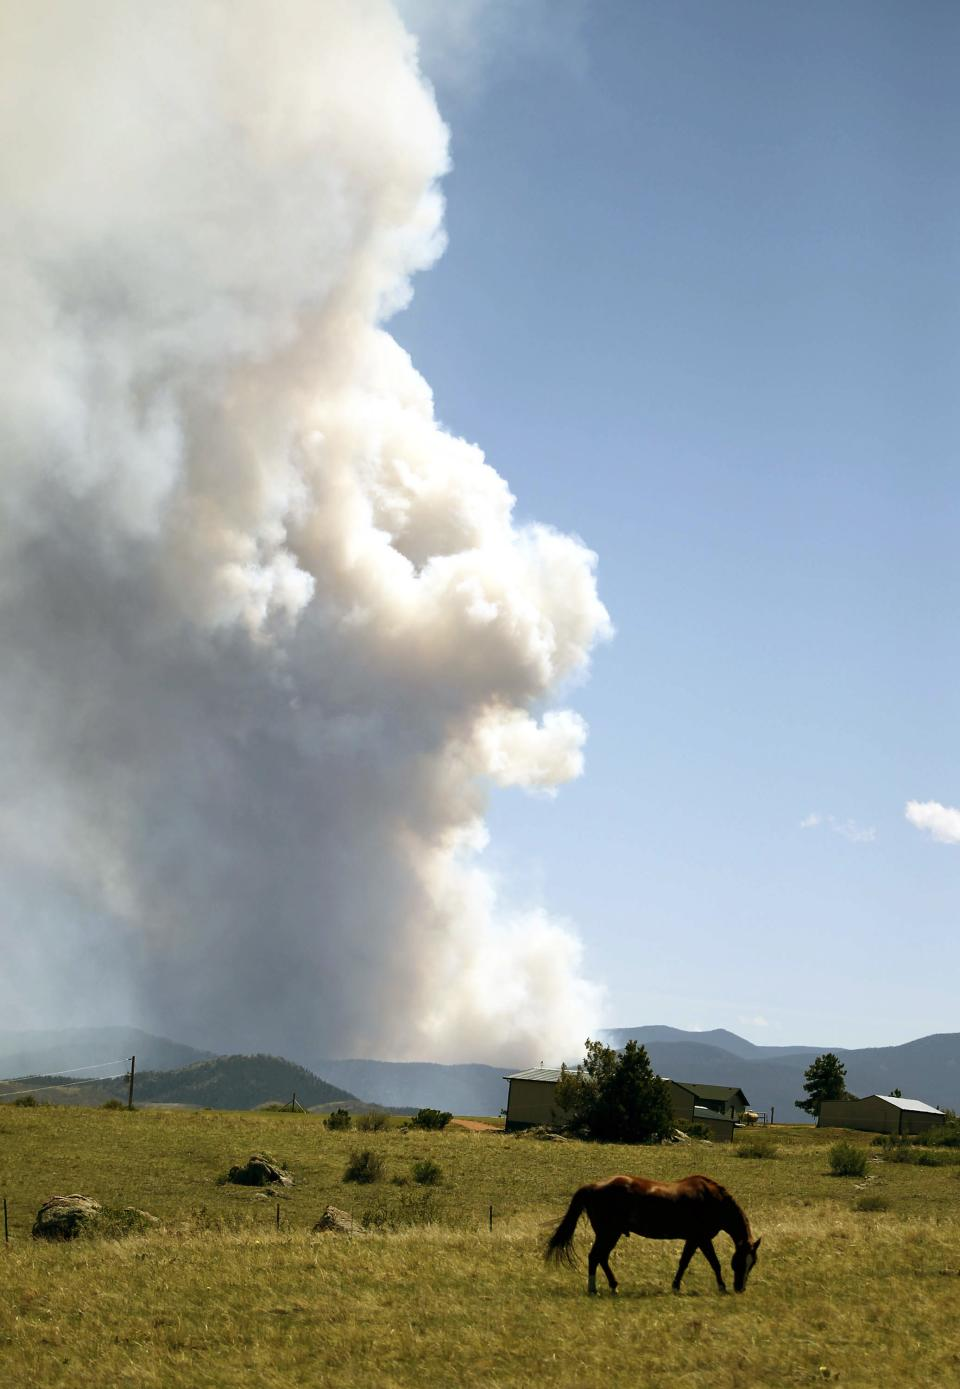 A horse grazes in a pasture along Colorado County Road 80C in Larimer County, Colo., as smoke billows from a wildfire Saturdaym June 9, 2012, northwest of Fort Collins, Colo. The cause of the fire is not yet known. (AP Photo/Laramie Daily Boomerang, Andy Carpenean)